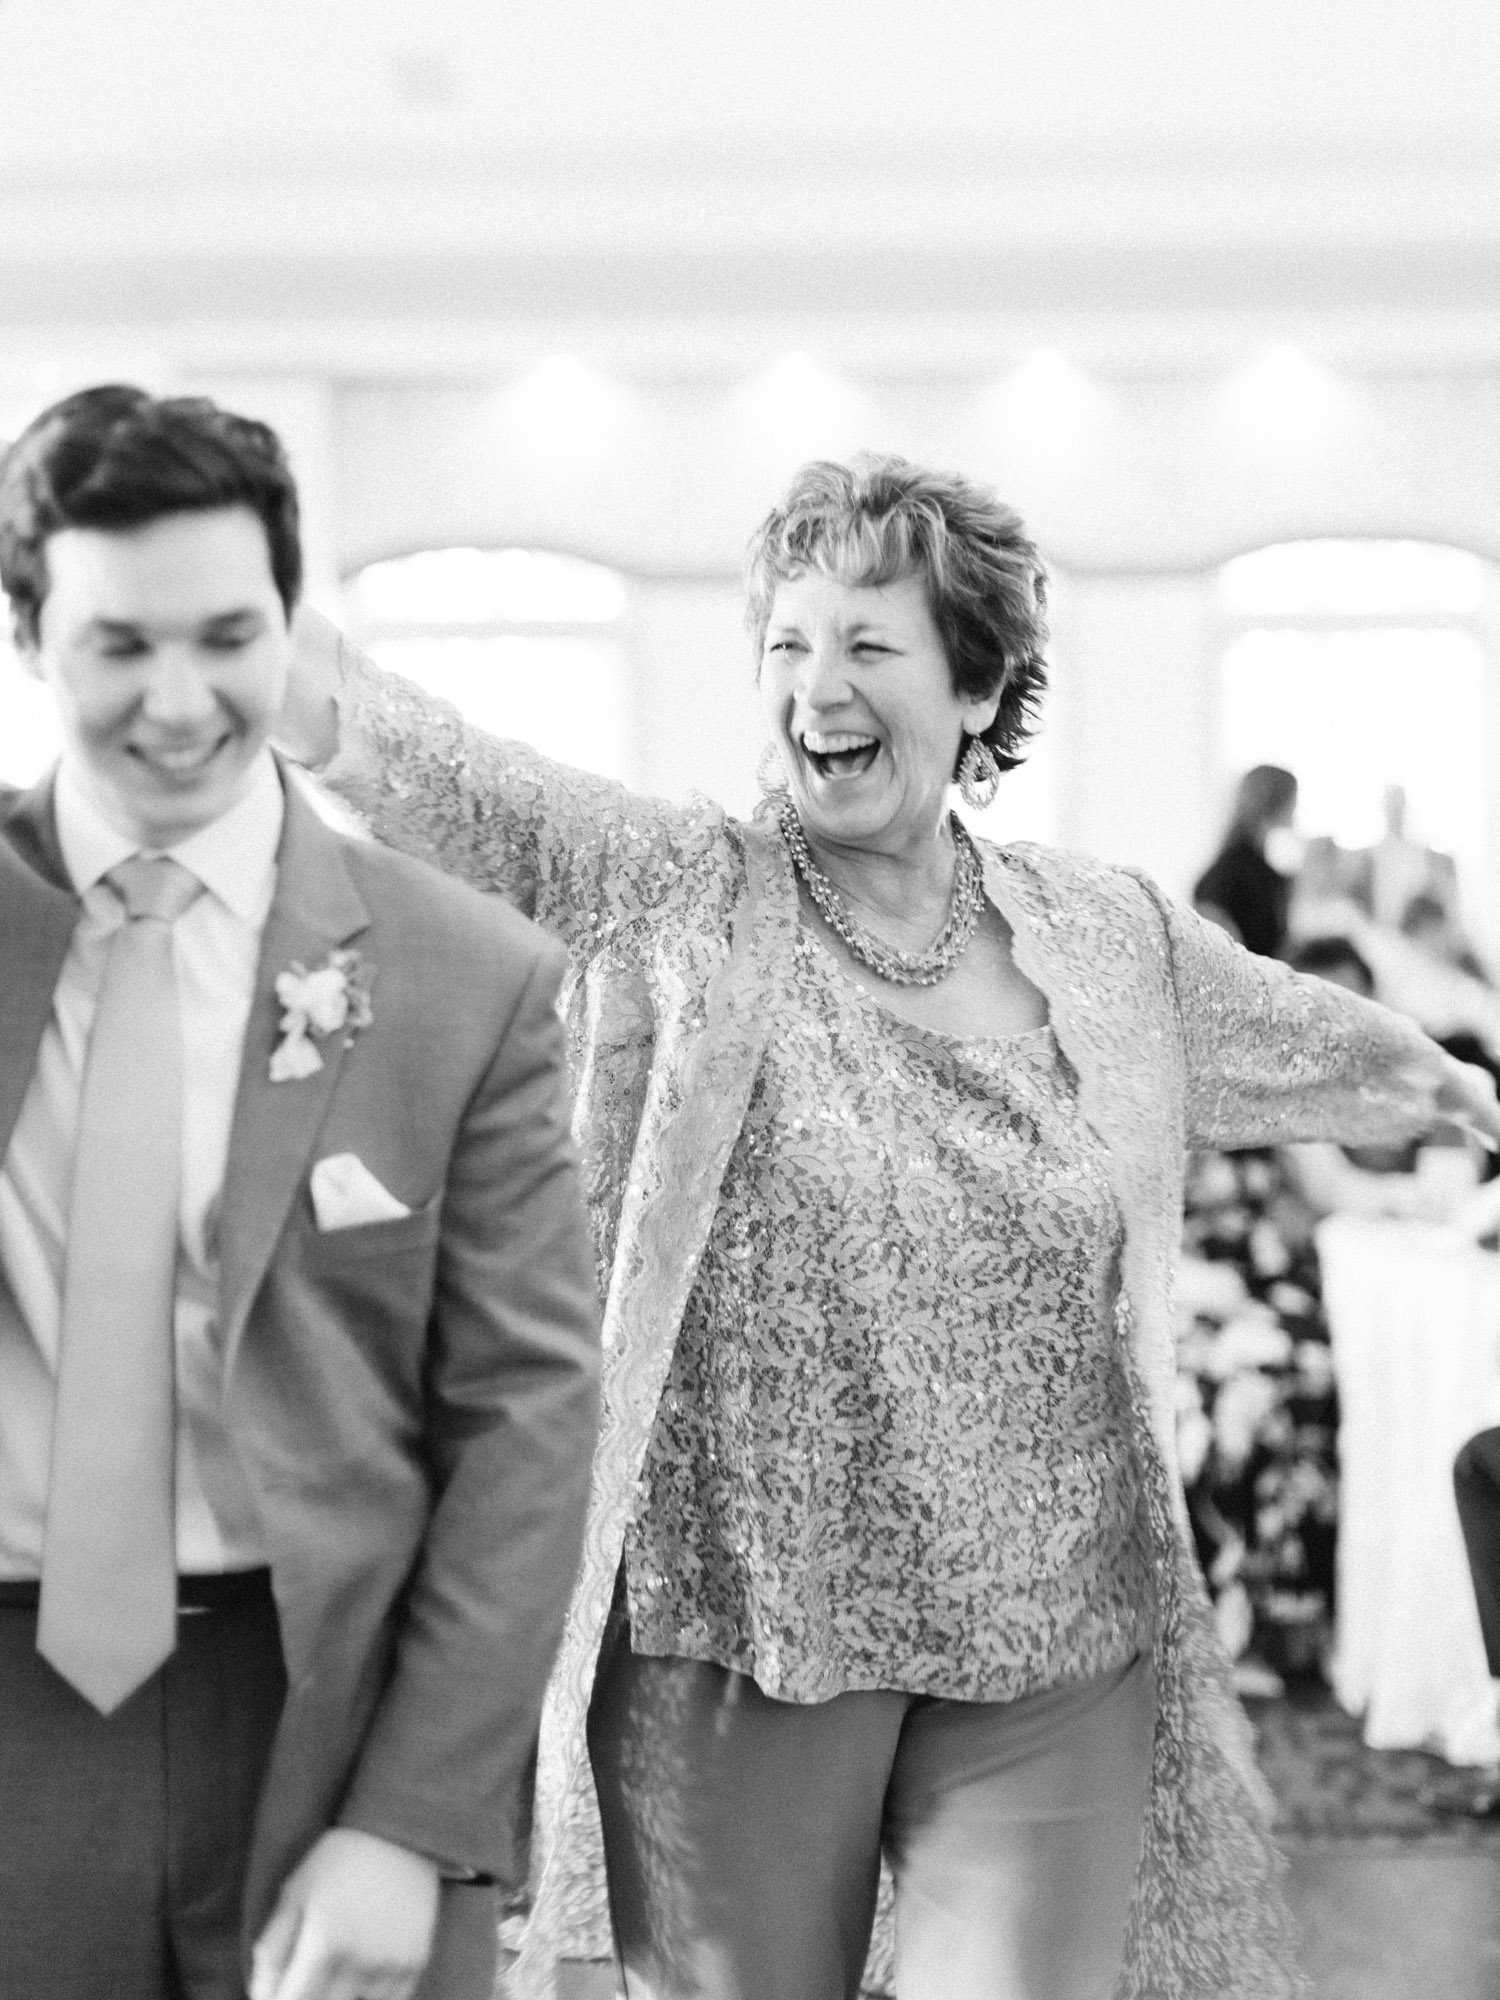 A groom and his mother laugh while dancing at his wedding reception at The Polo Fields venue in Ann Arbor, Michigan